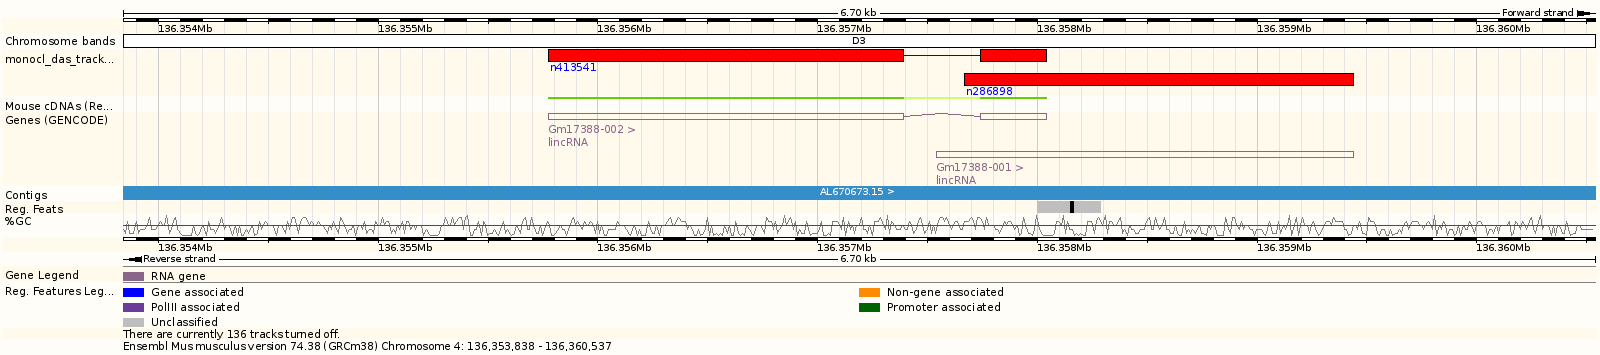 Example of a the MONOCL DAS track on the Mouse genome using the Ensembl Genome viewer.